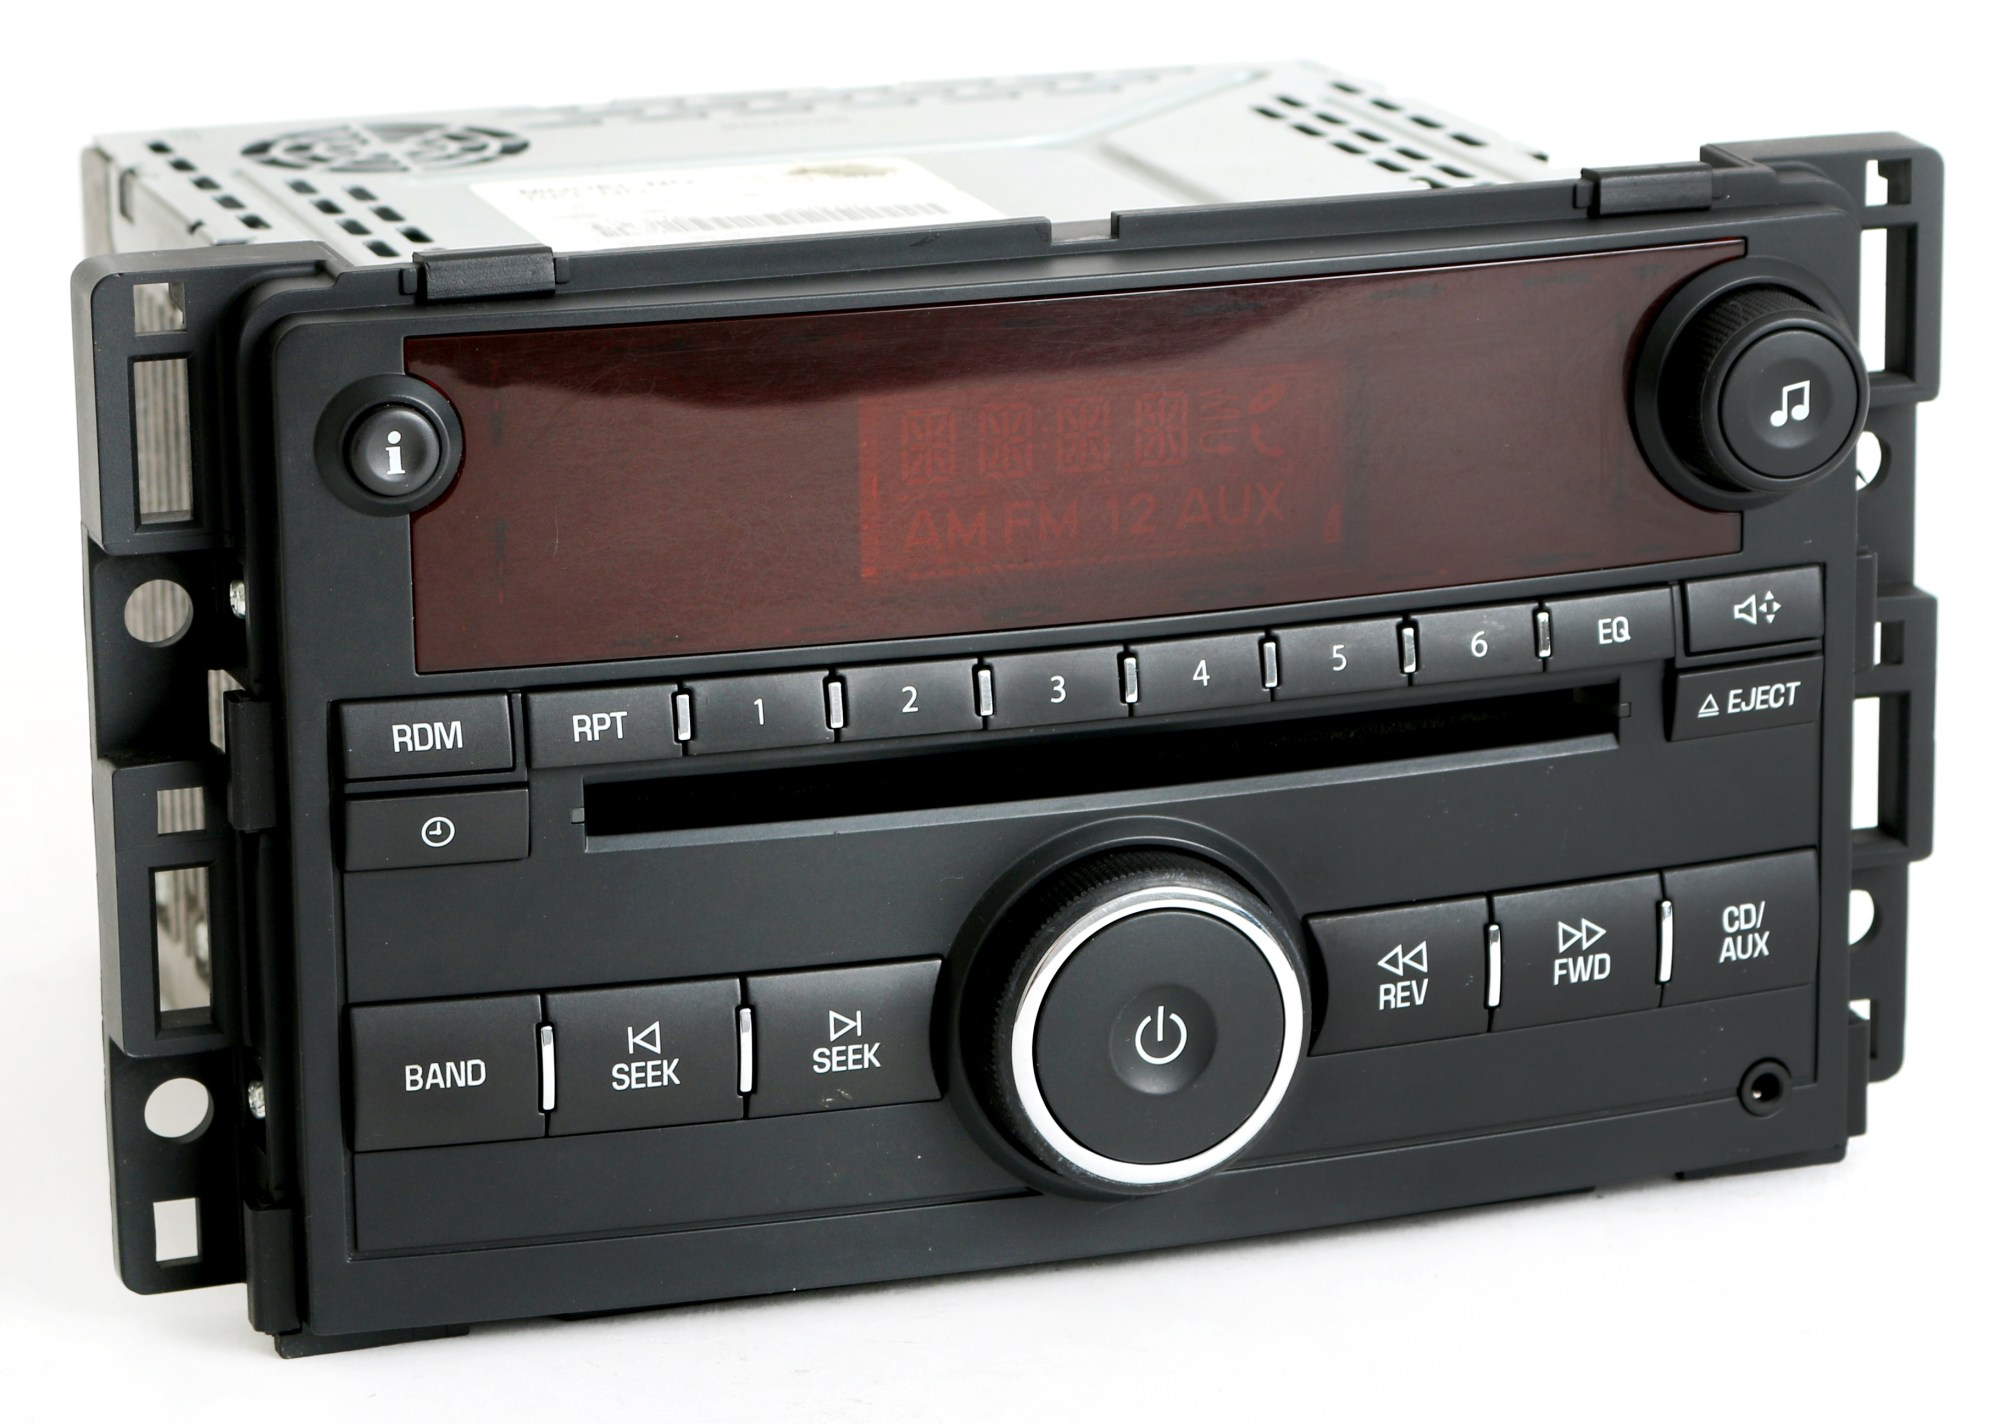 hight resolution of saturn ion vue 2006 2007 radio am fm cd player w auxiliary input pn 15850680 1 factory radio